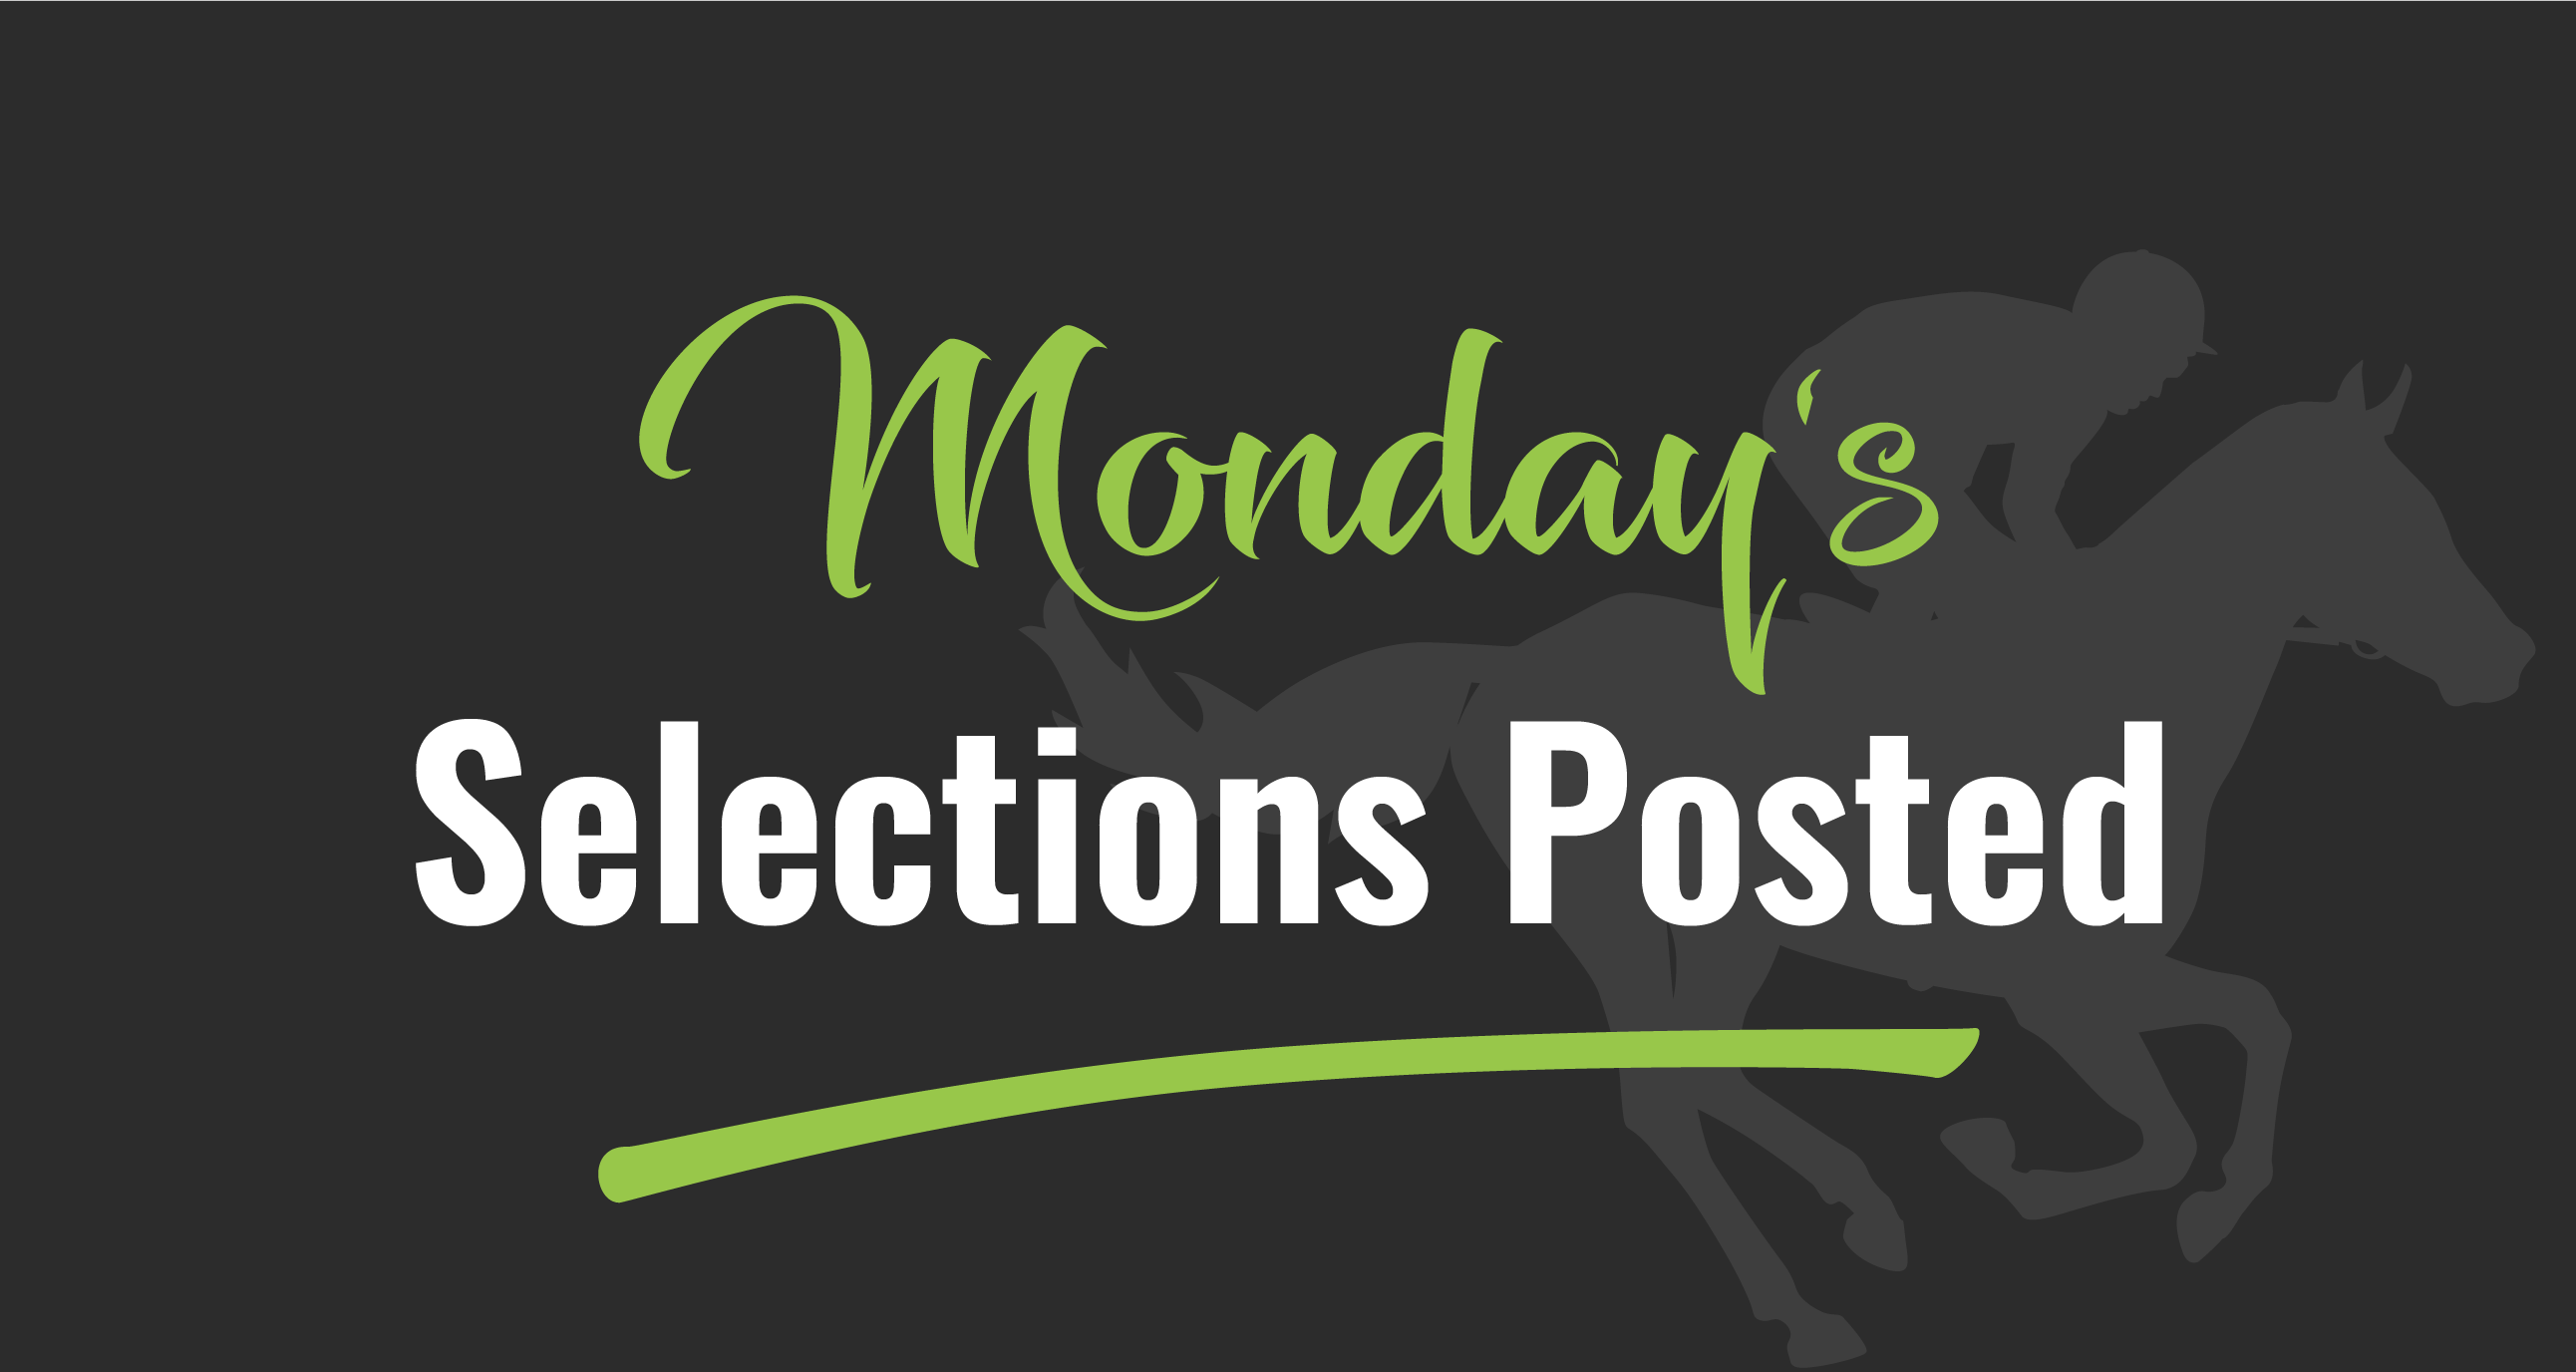 Selections for Monday 17 June 2019